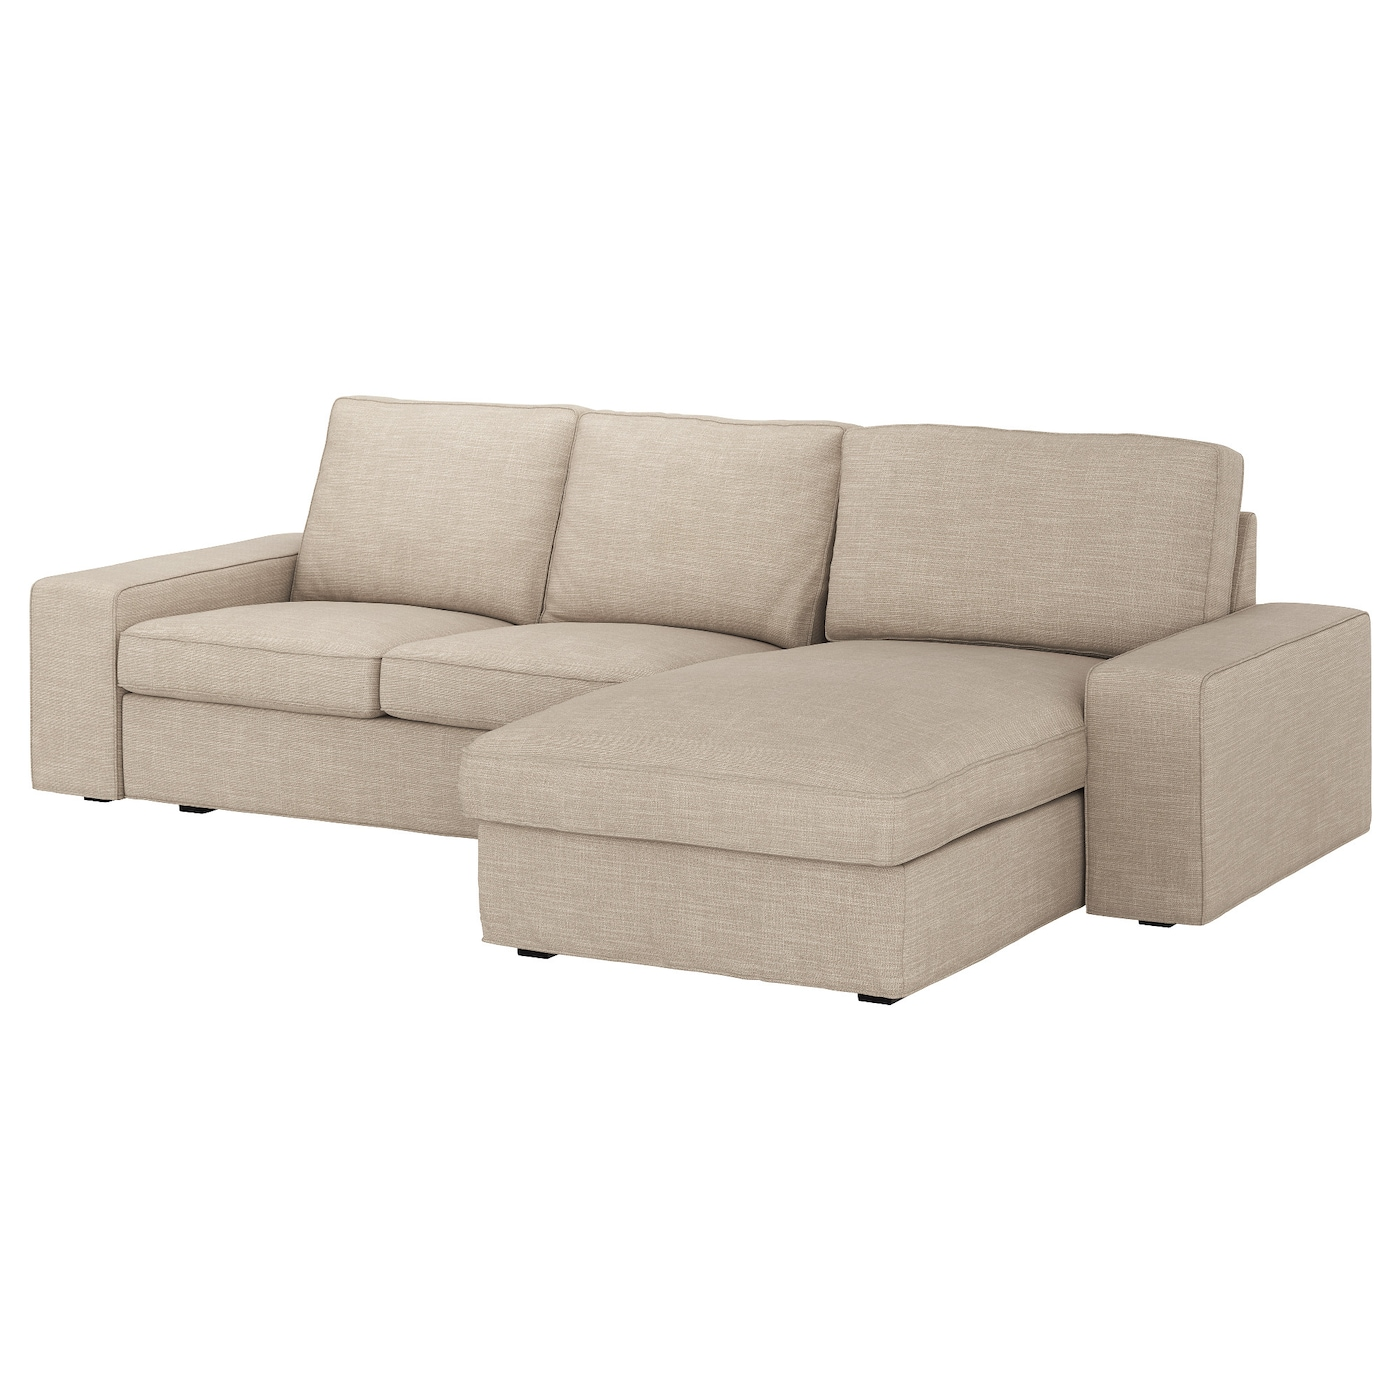 Kivik 3 seat sofa with chaise longue hillared beige ikea for Chaise longue style sofa